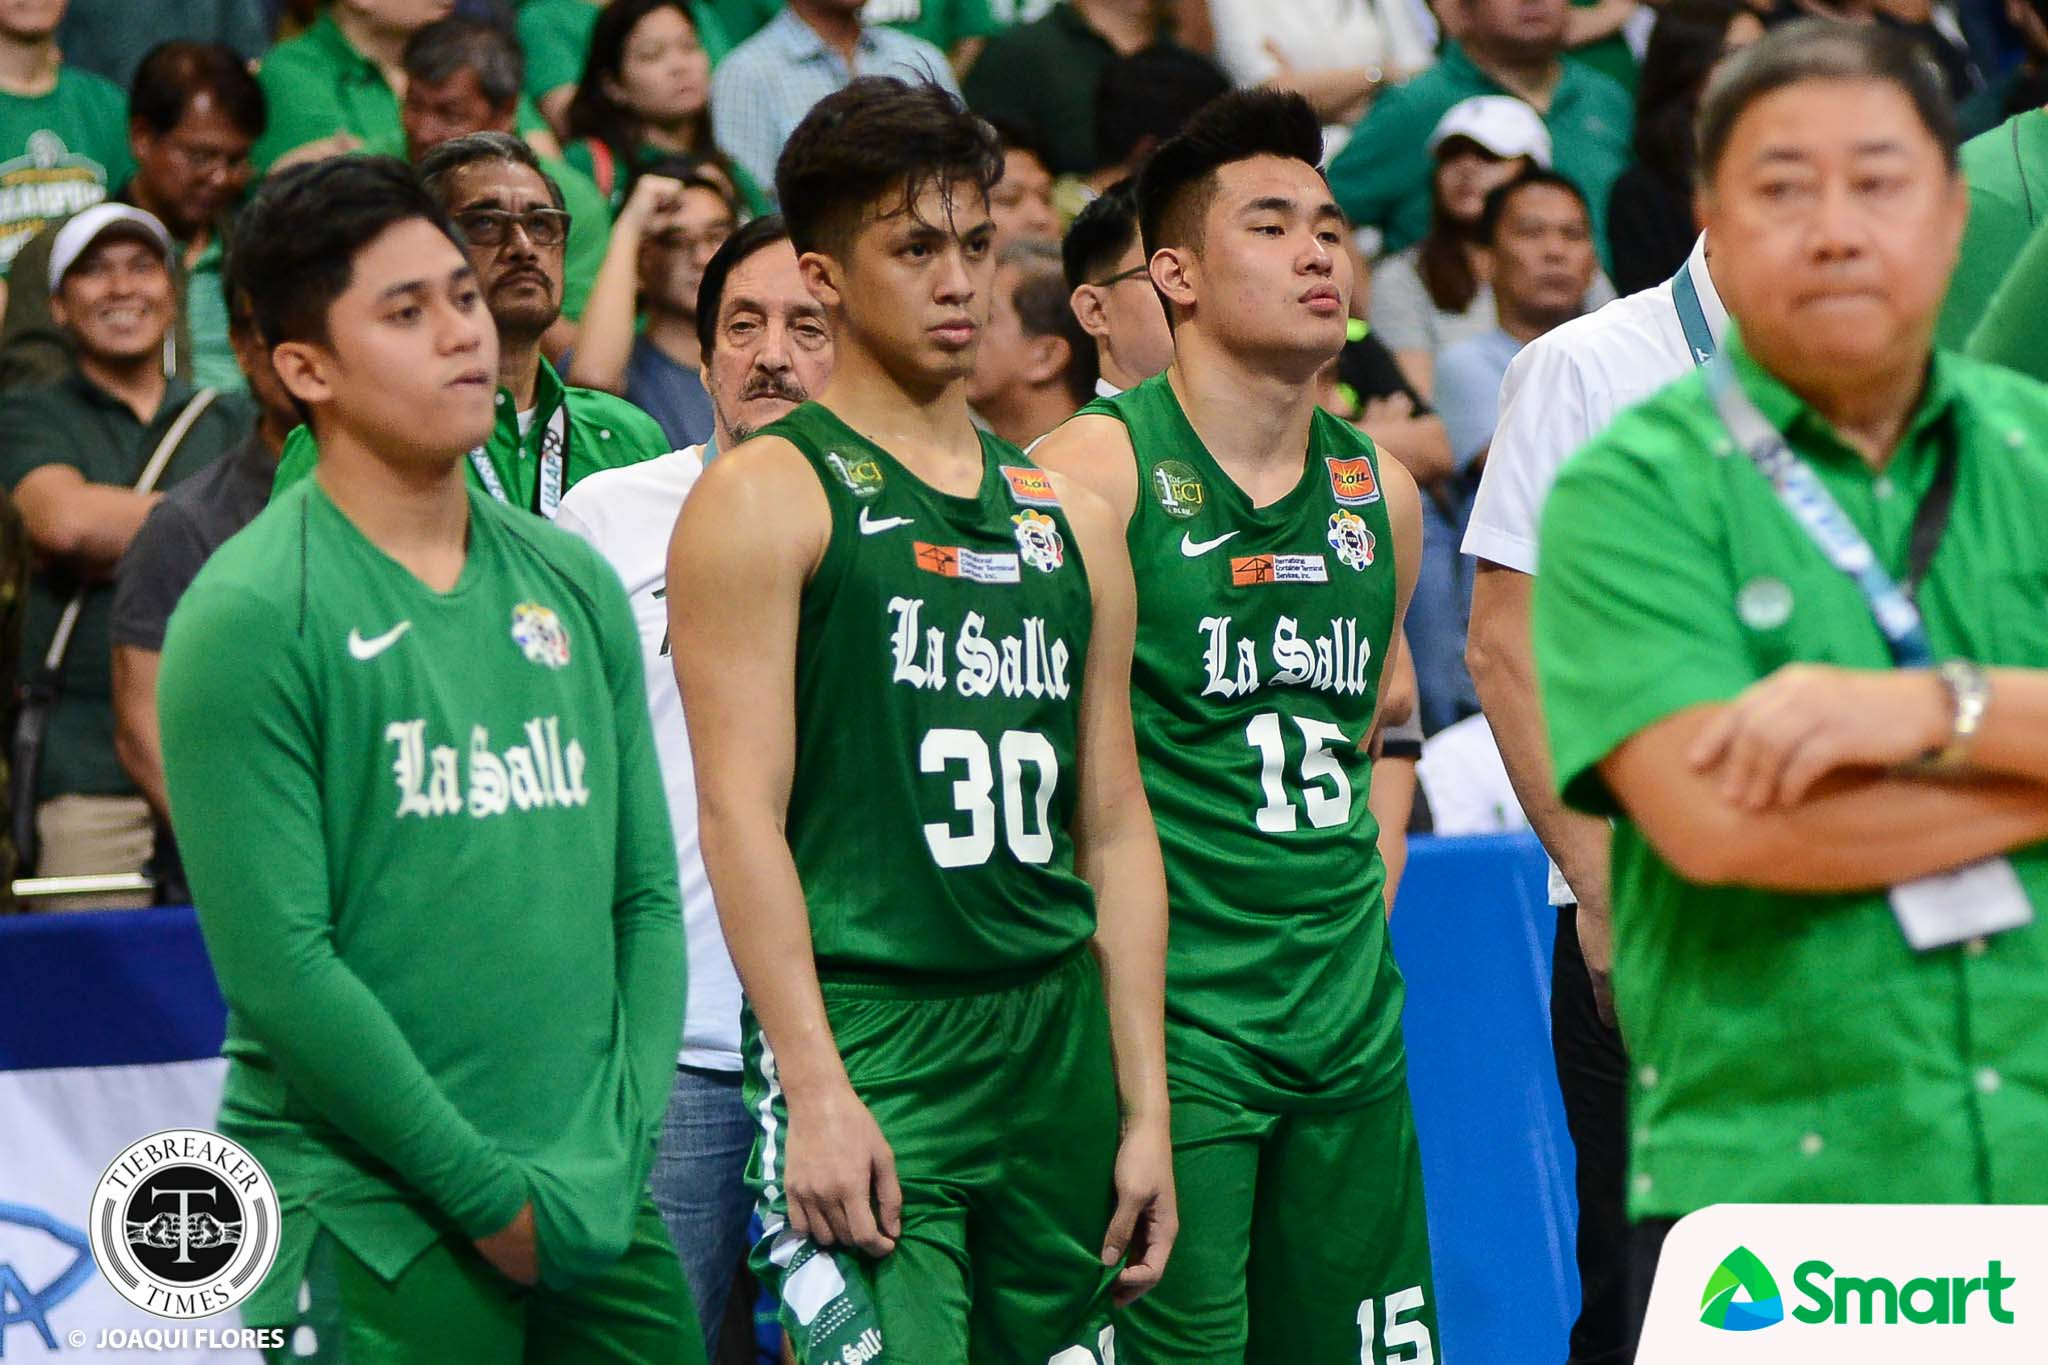 Tiebreaker Times Andrei Caracut made sure to silence La Salle doubters Basketball DLSU News UAAP  UAAP Season 82 Men's Basketball UAAP Season 82 DLSU Men's Basketball Andrei Caracut